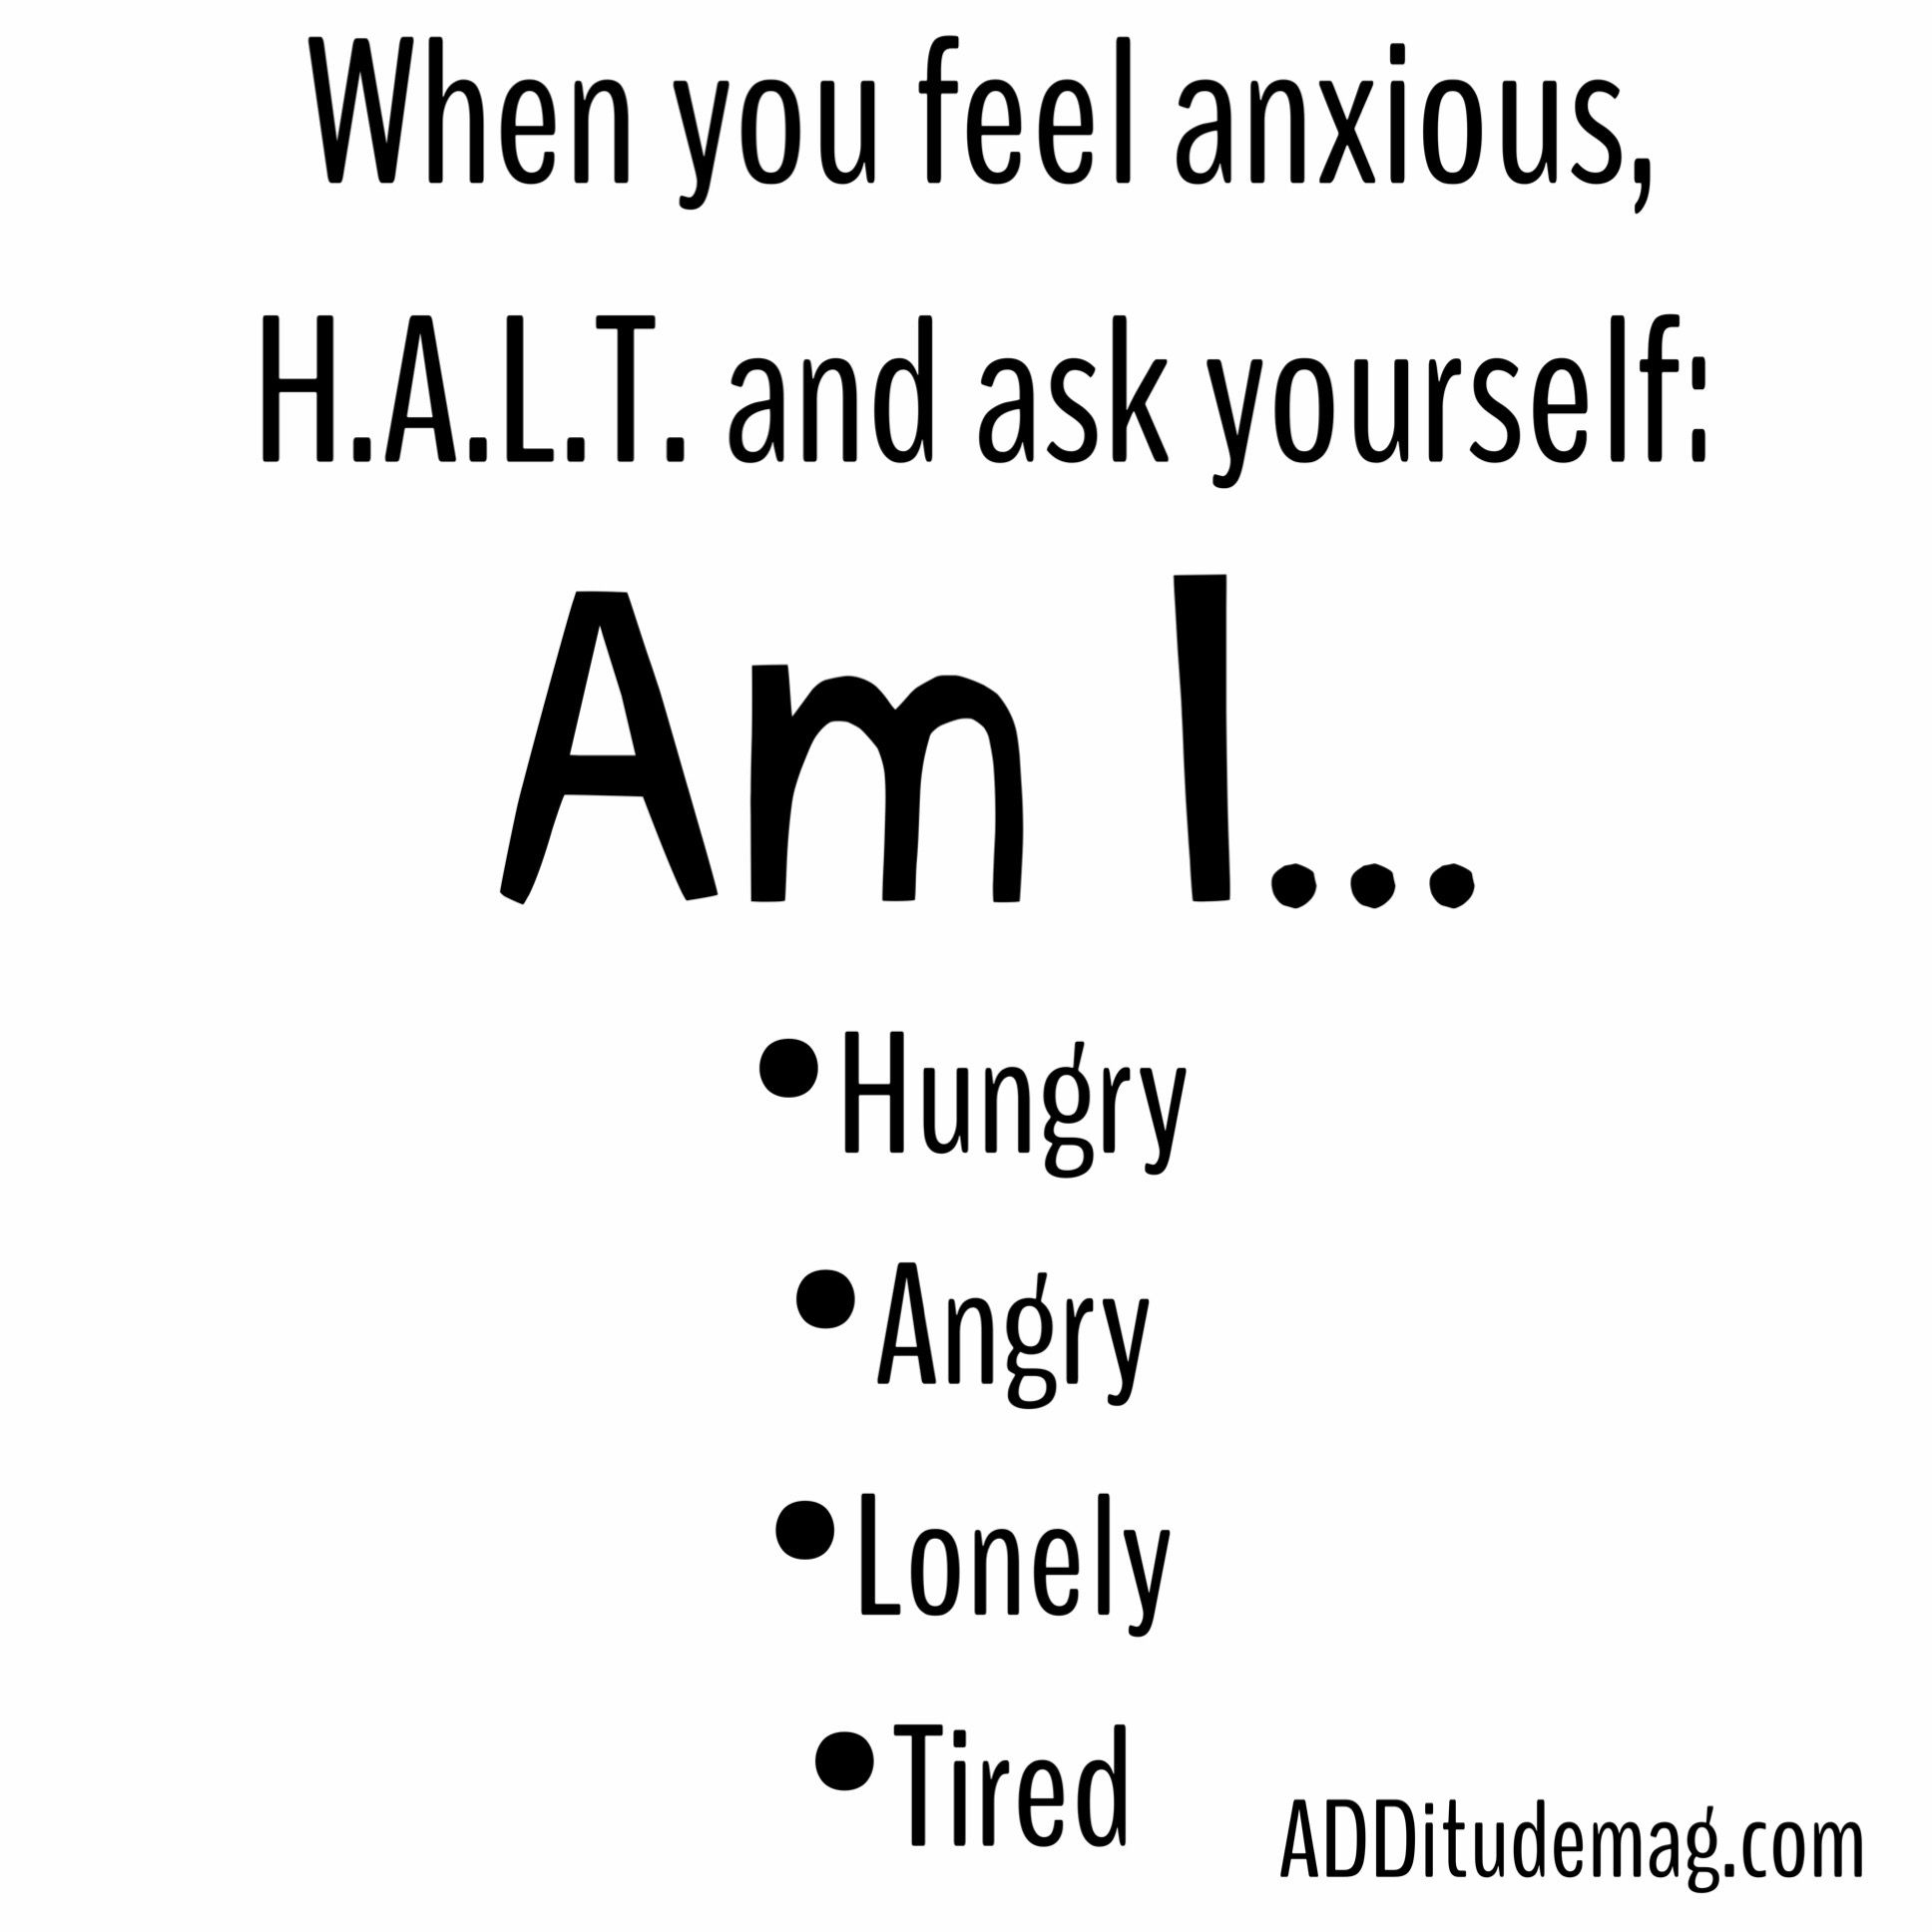 worksheet Hungry Angry Lonely Tired Worksheet panic buttons how to stop anxiety and its triggers hungry angry lonely tired